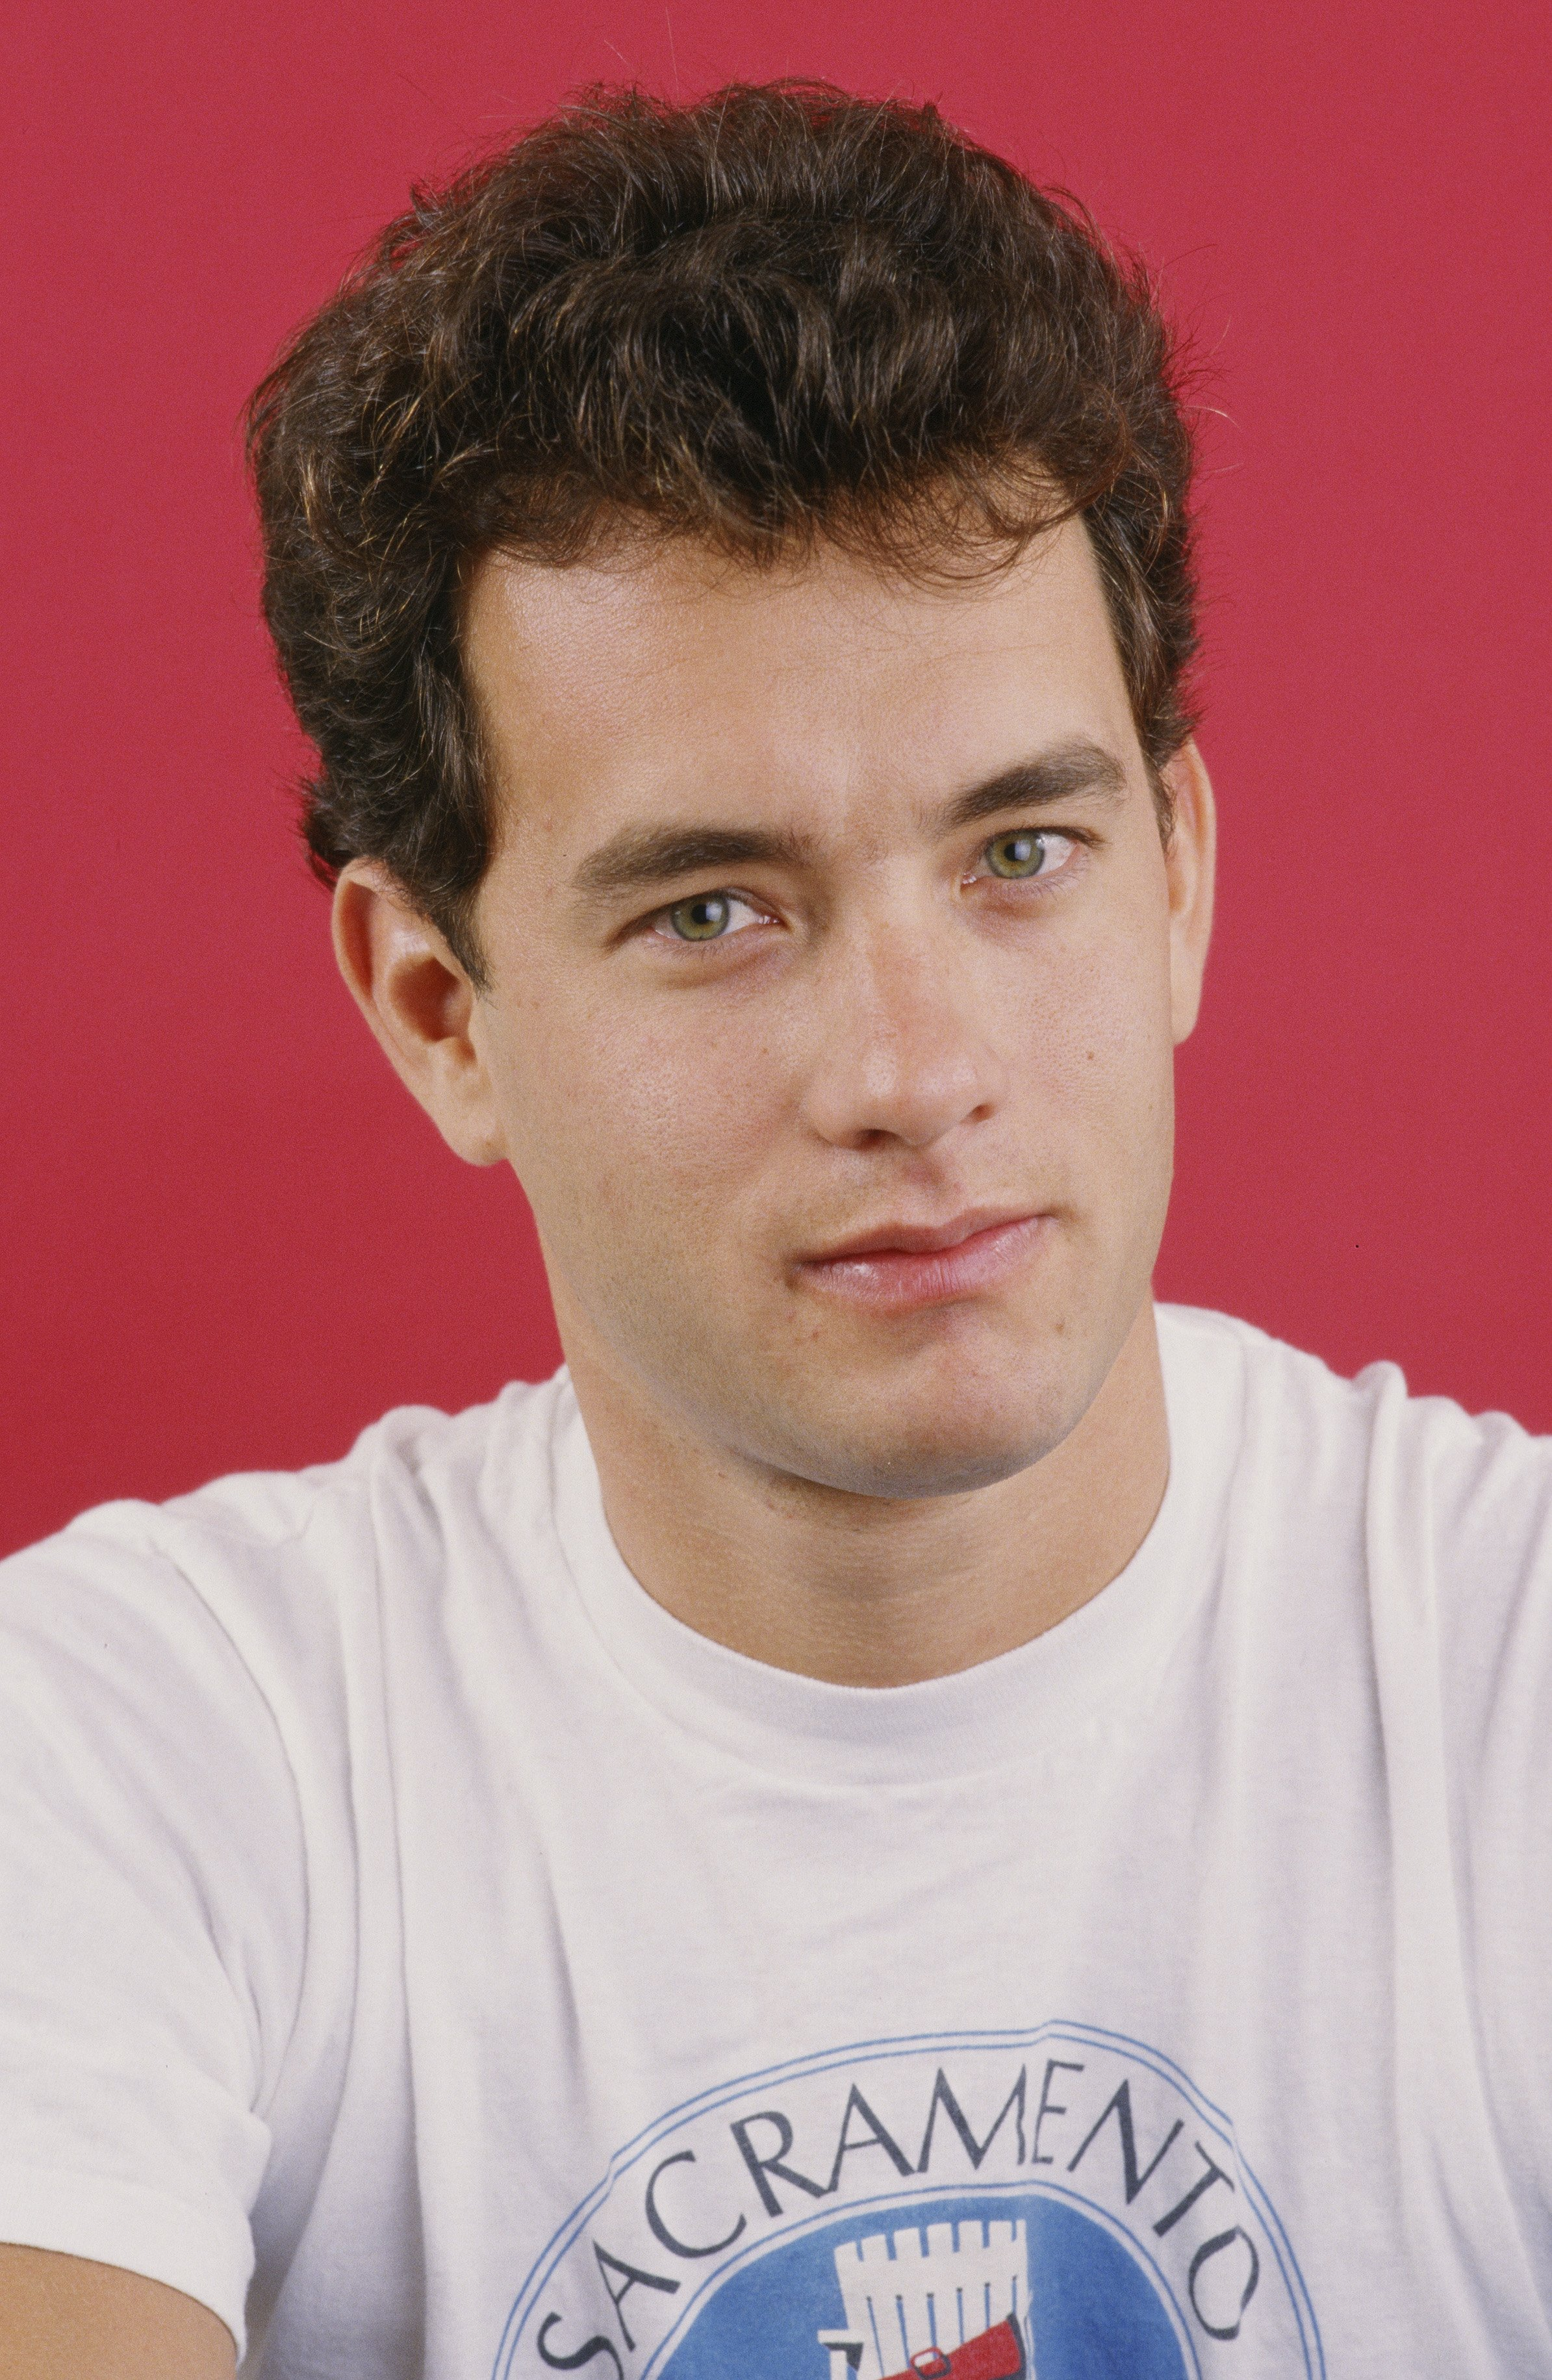 """Tom Hanks poses during a 1986 West Hollywood, California studio photo session to promote his movie """"The Money Pit."""" 